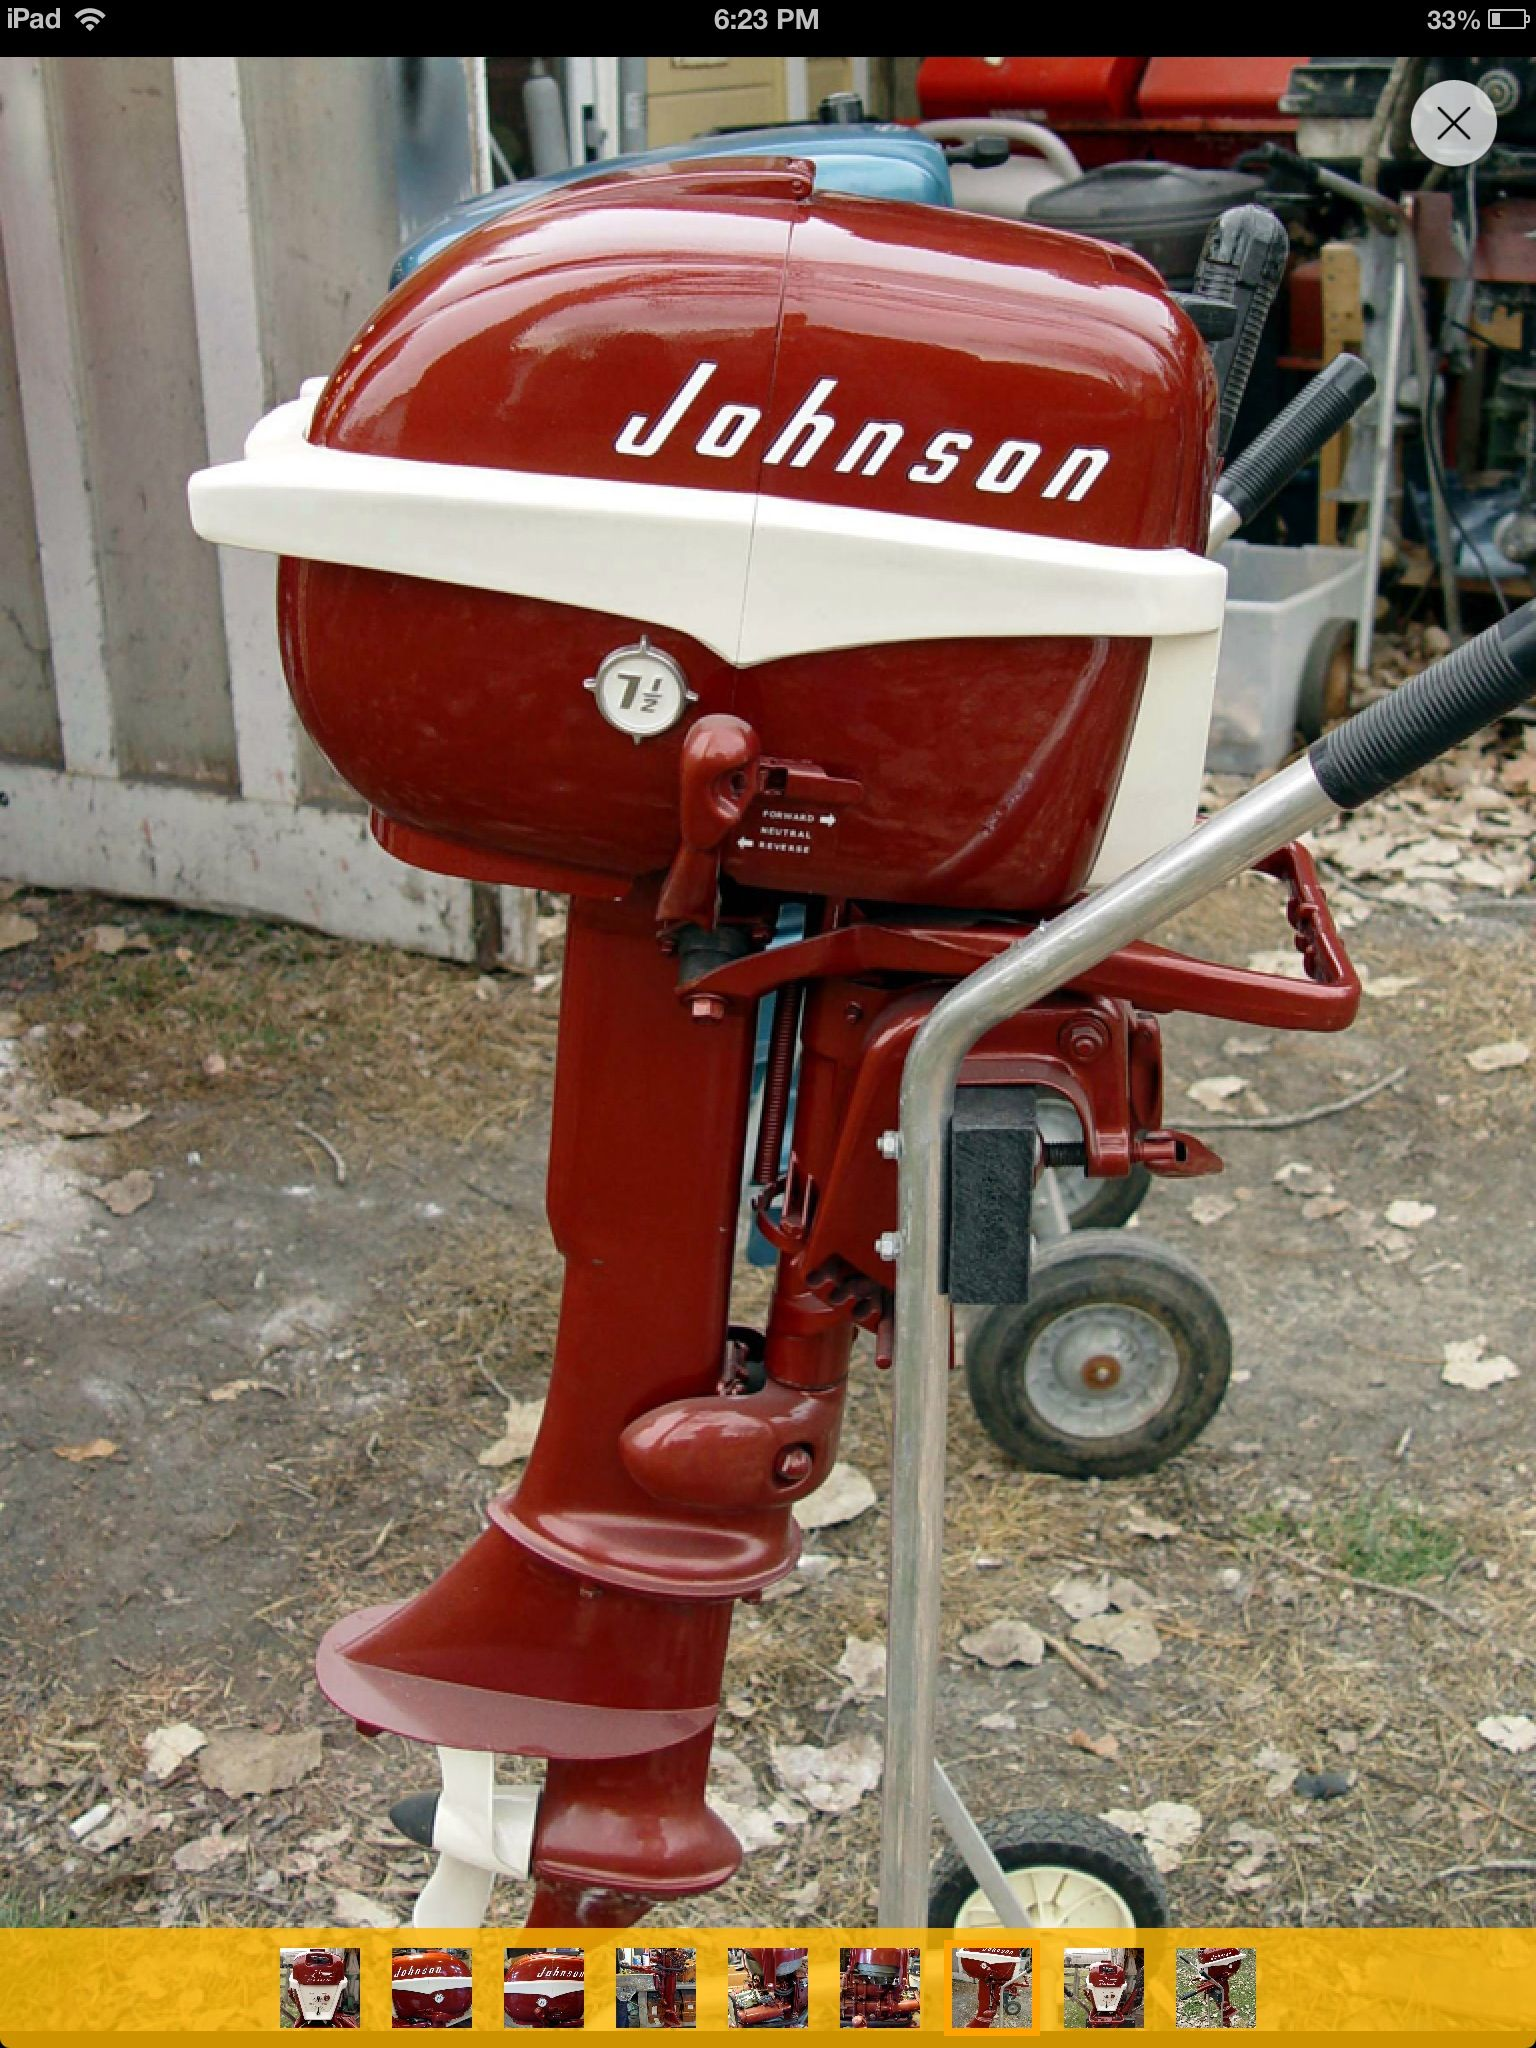 johnson outboard motor 1957 7 5 hp boat motors